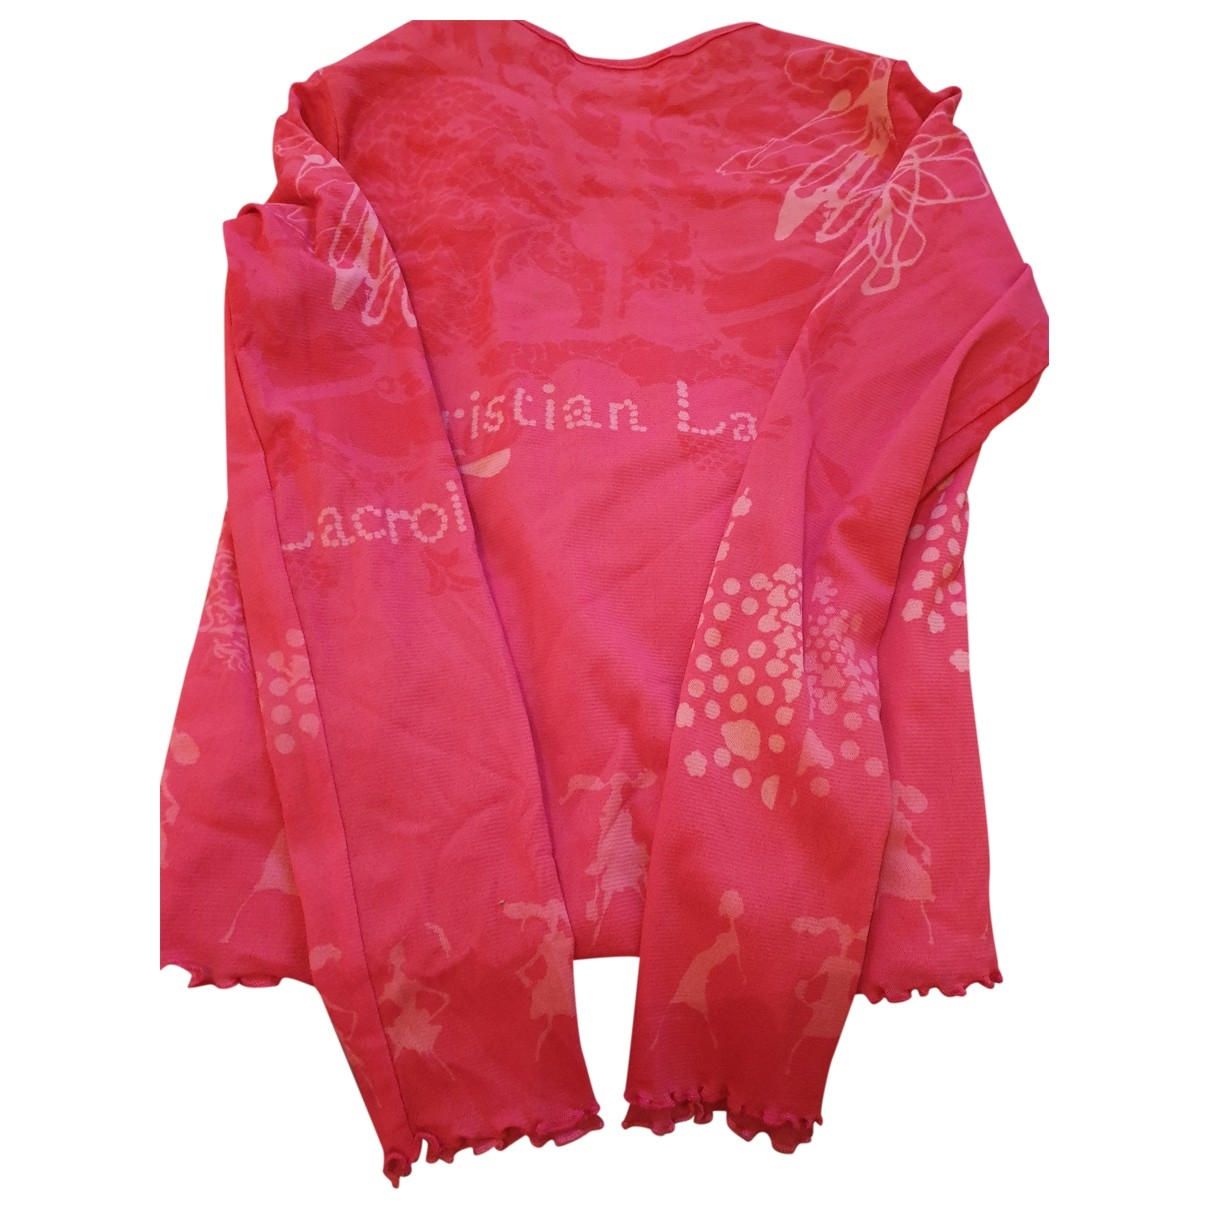 Christian Lacroix \N Pink  top for Kids 16 years - M FR